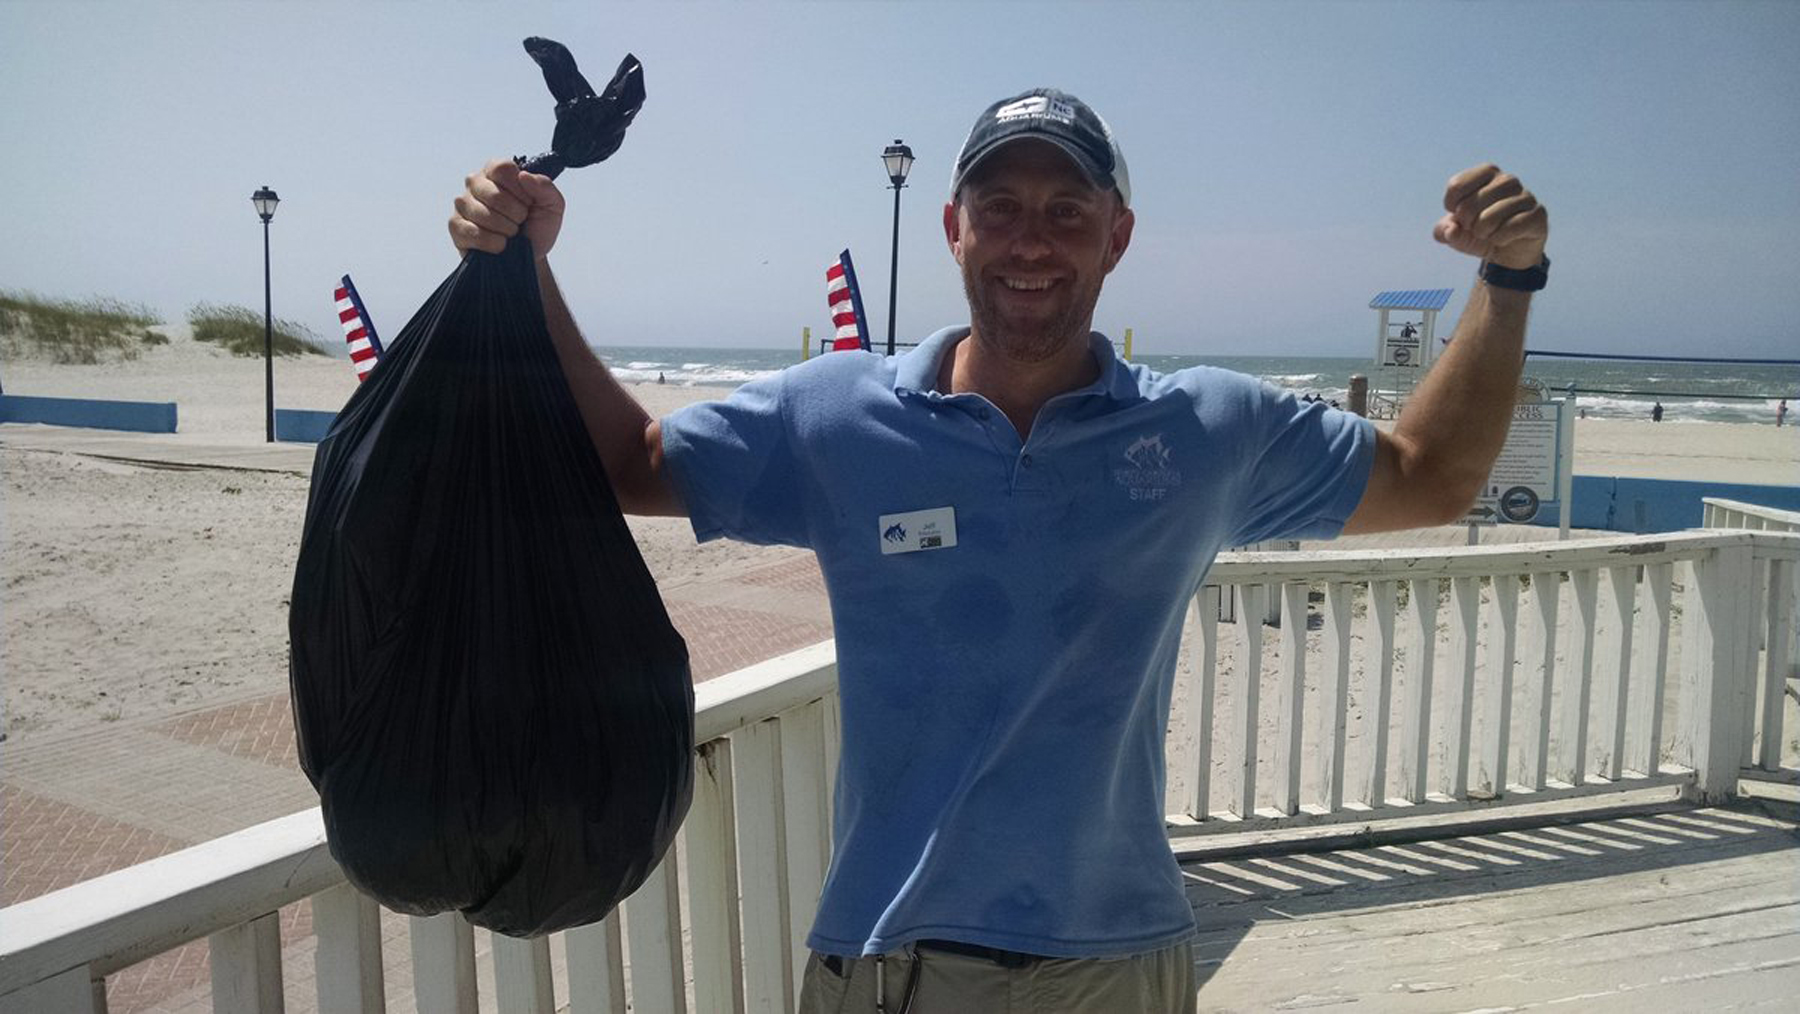 The Aquarium, Fort Macon State Park, and the towns of Atlantic Beach, Pine Knoll Shores, Indian Beach and Emerald Isle join together to pick up trash across Bogue Banks.